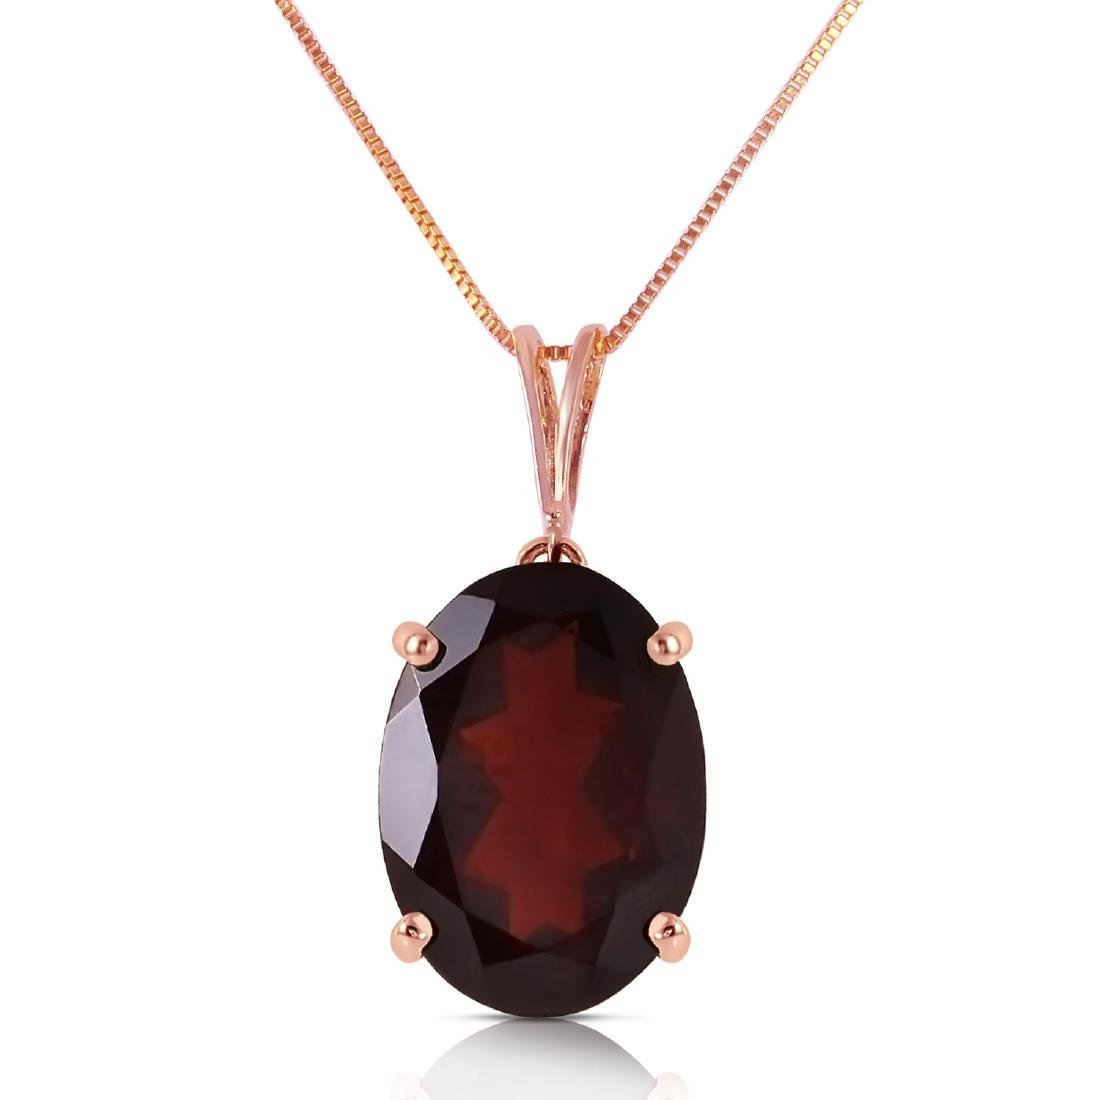 Genuine 6 ctw Garnet Necklace Jewelry 14KT Rose Gold -